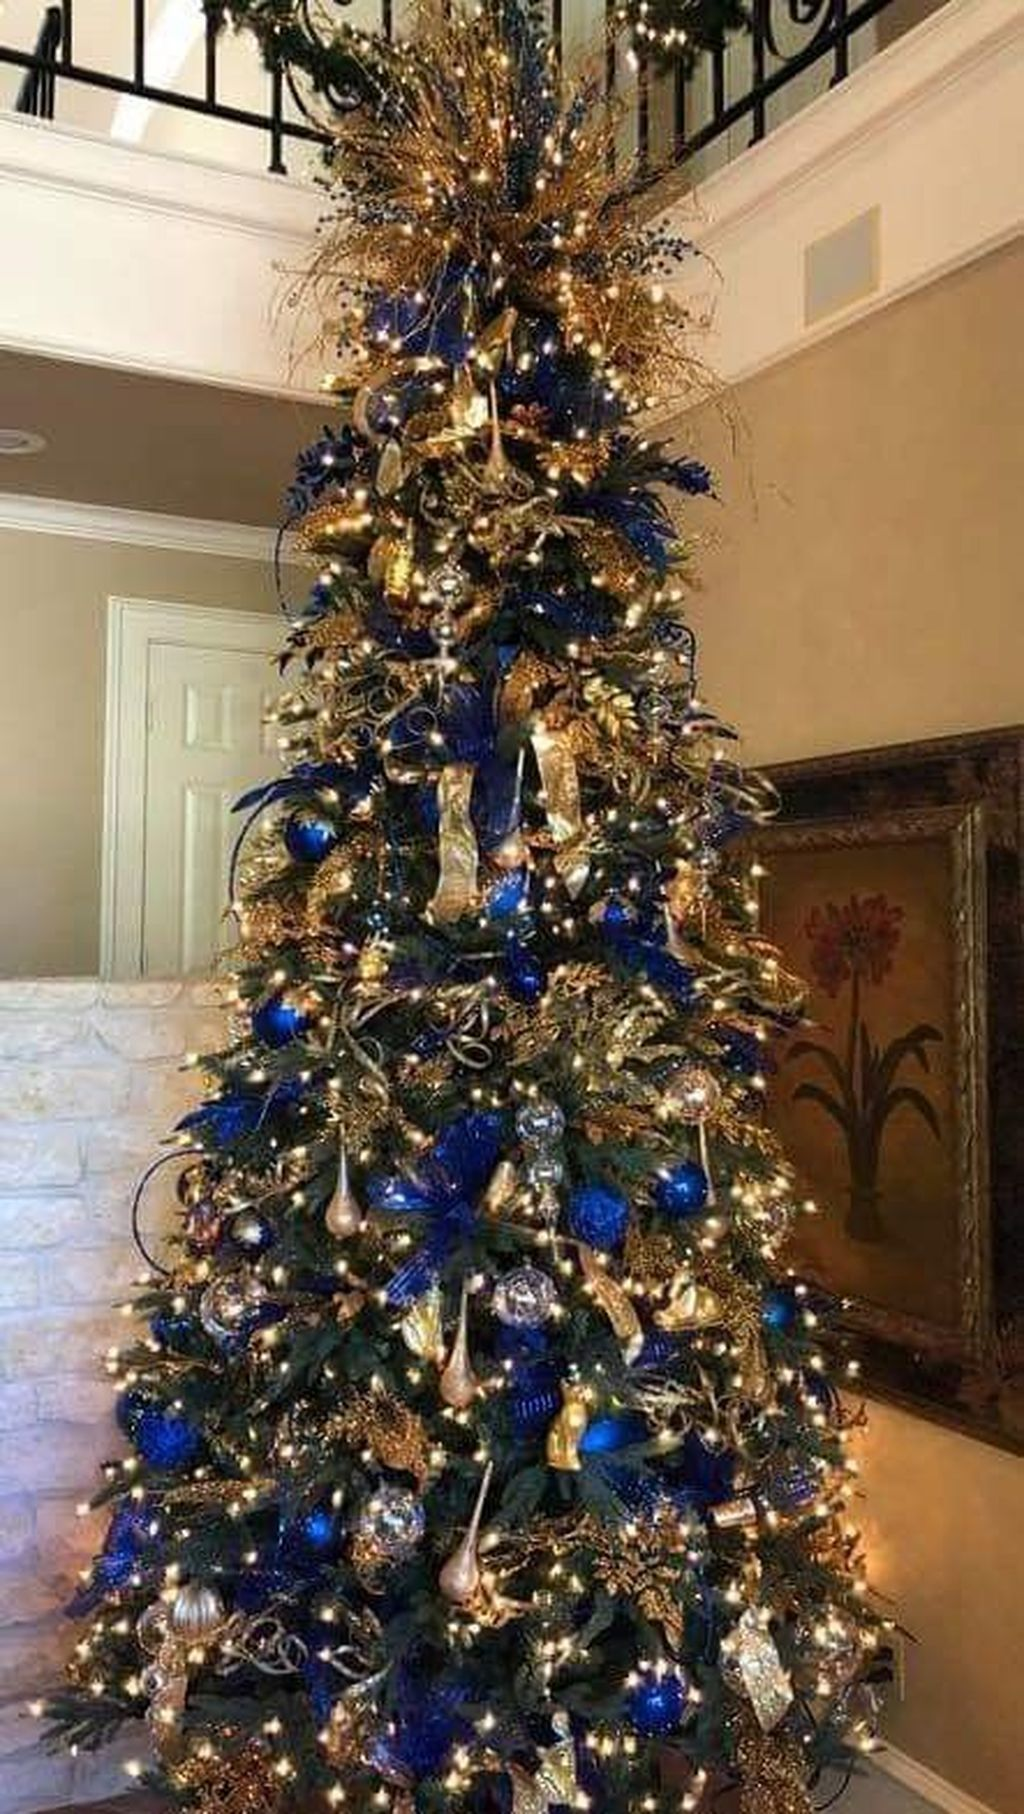 Awesome 50 Lovely Christmas Tree Decoration Ideas More At Https H Blue Christmas Tree Decorations Gold Christmas Decorations Gold Christmas Tree Decorations